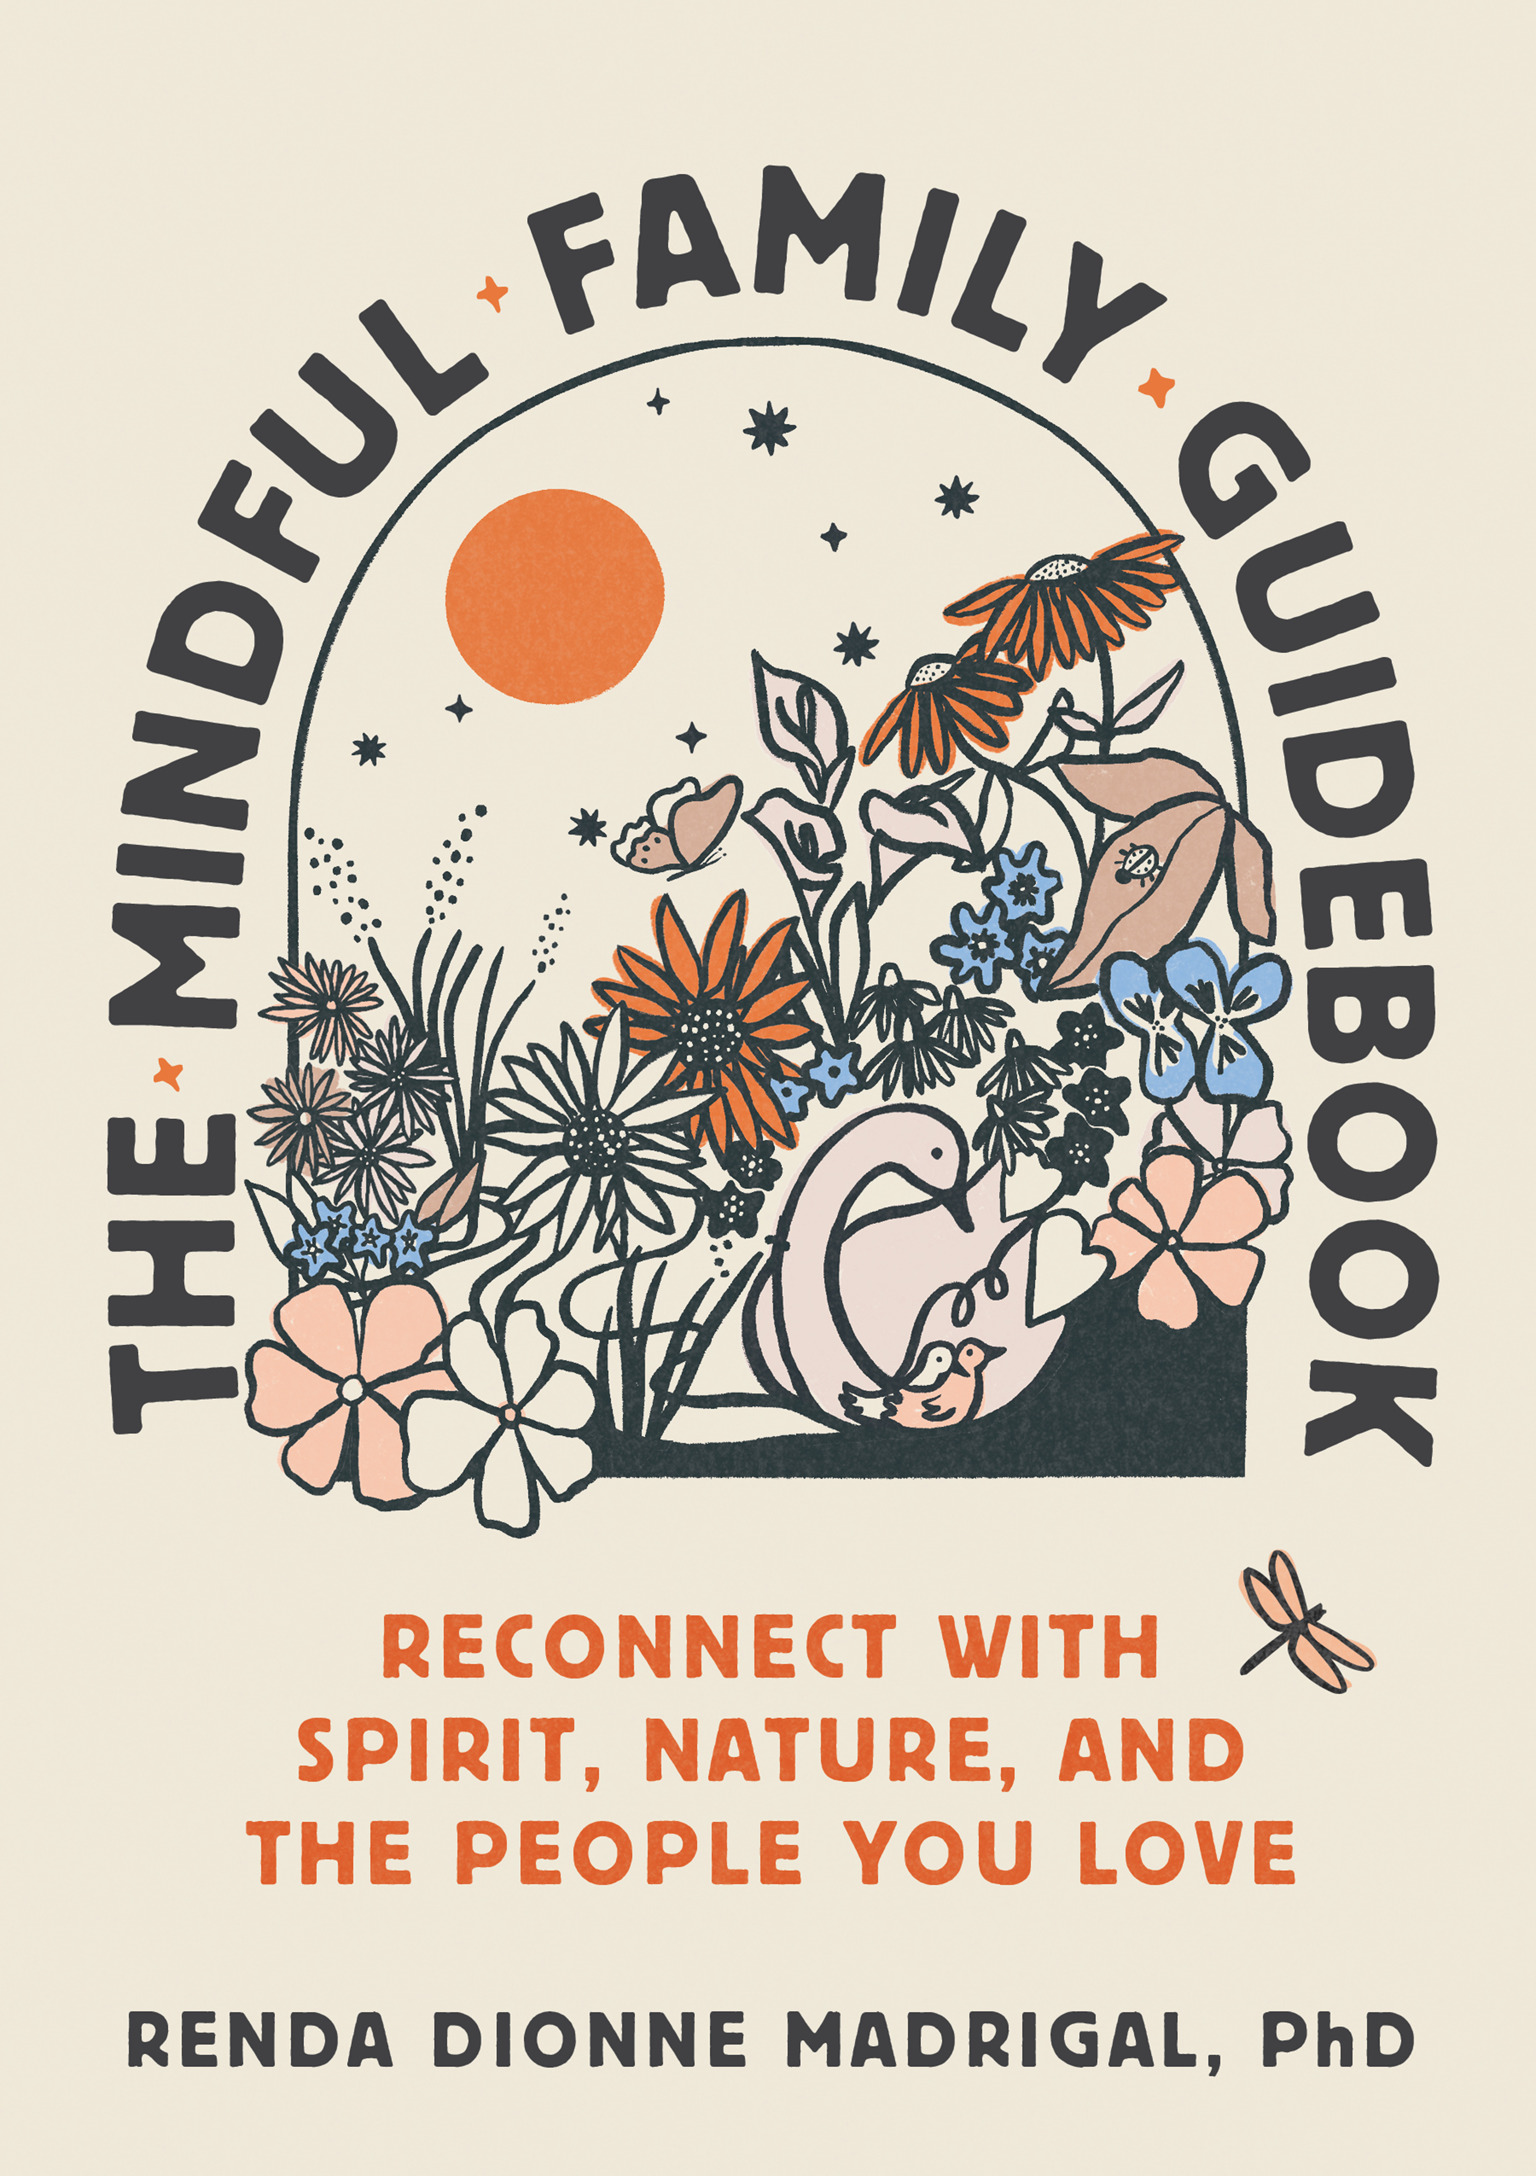 The Mindful Family Guidebook